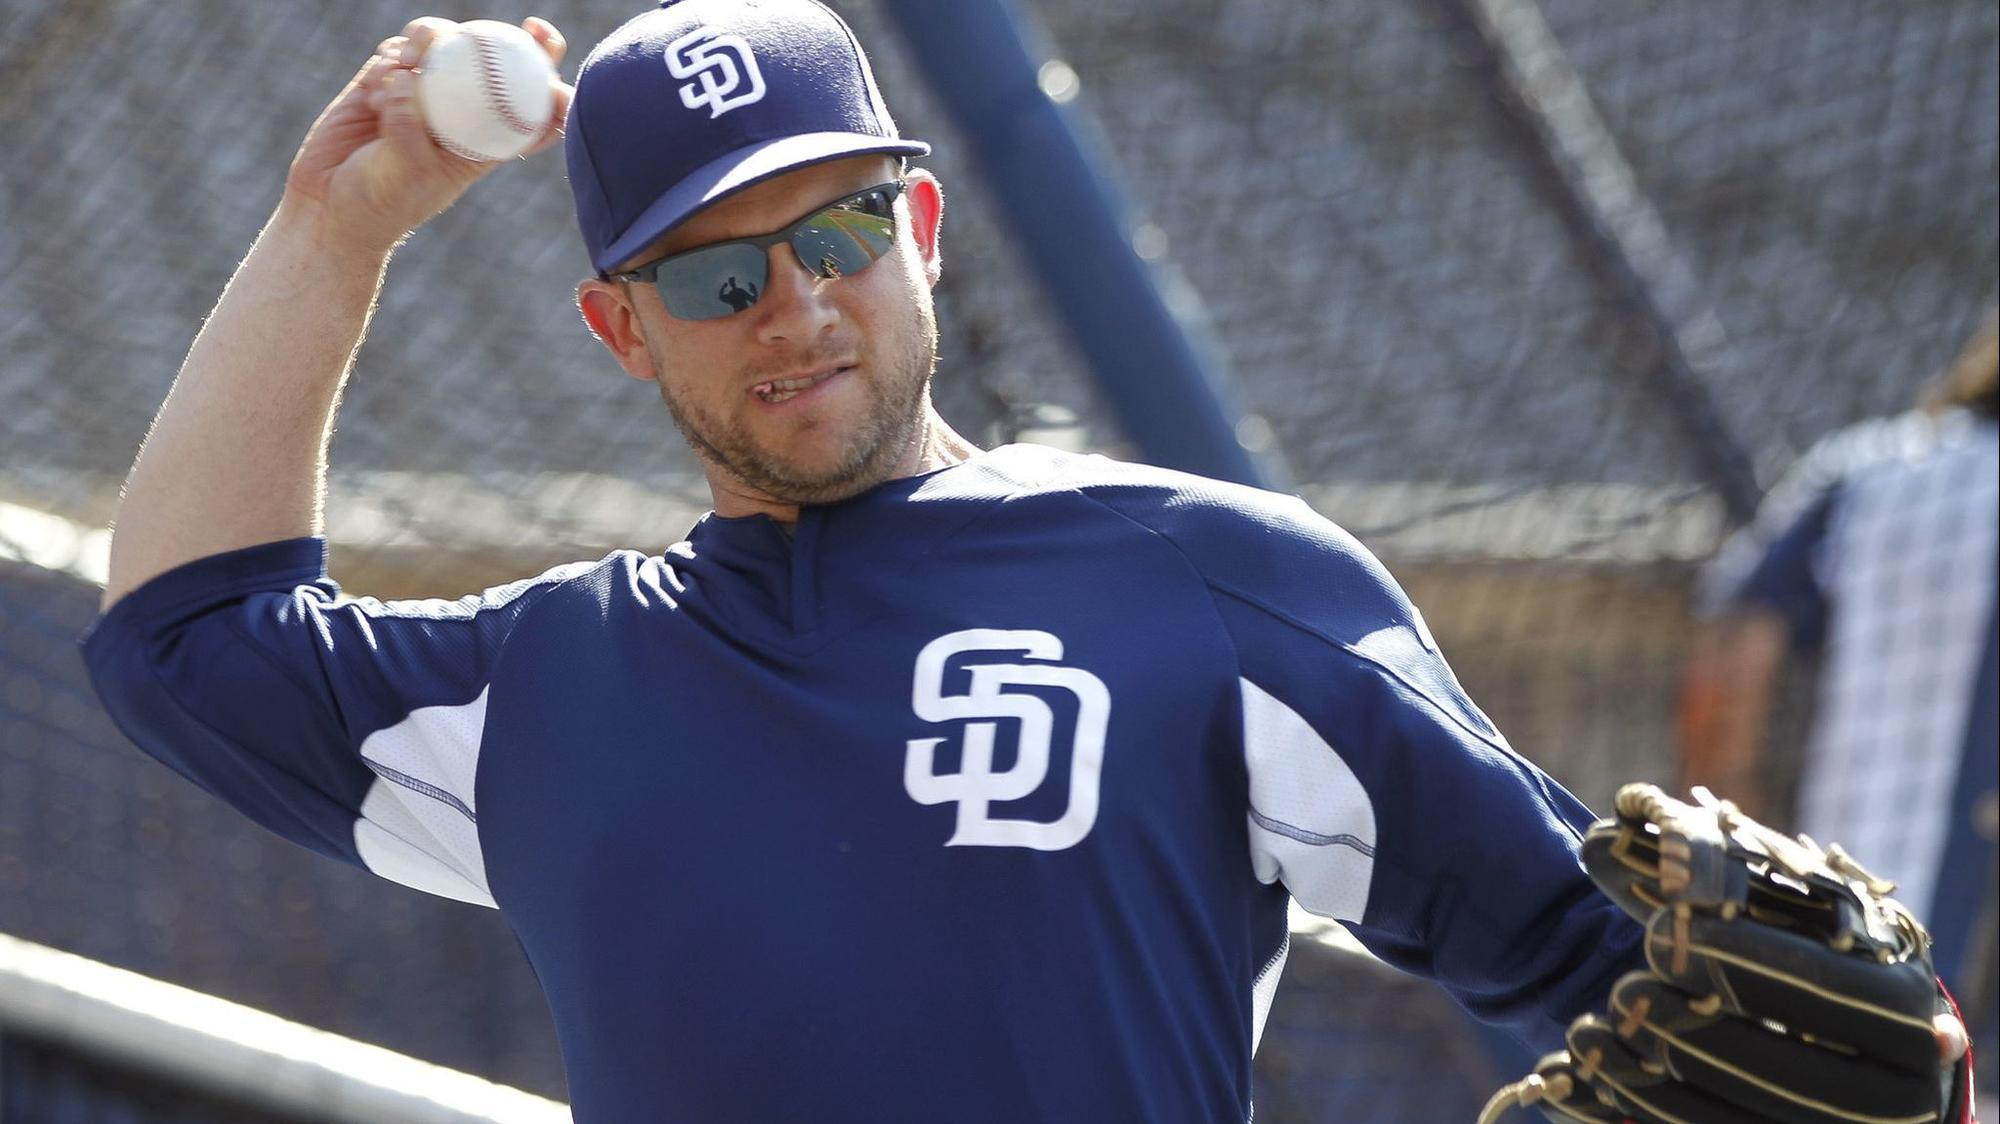 Sd-sp-padres-andy-green-indifferent-about-shift-ban-talk-20181212